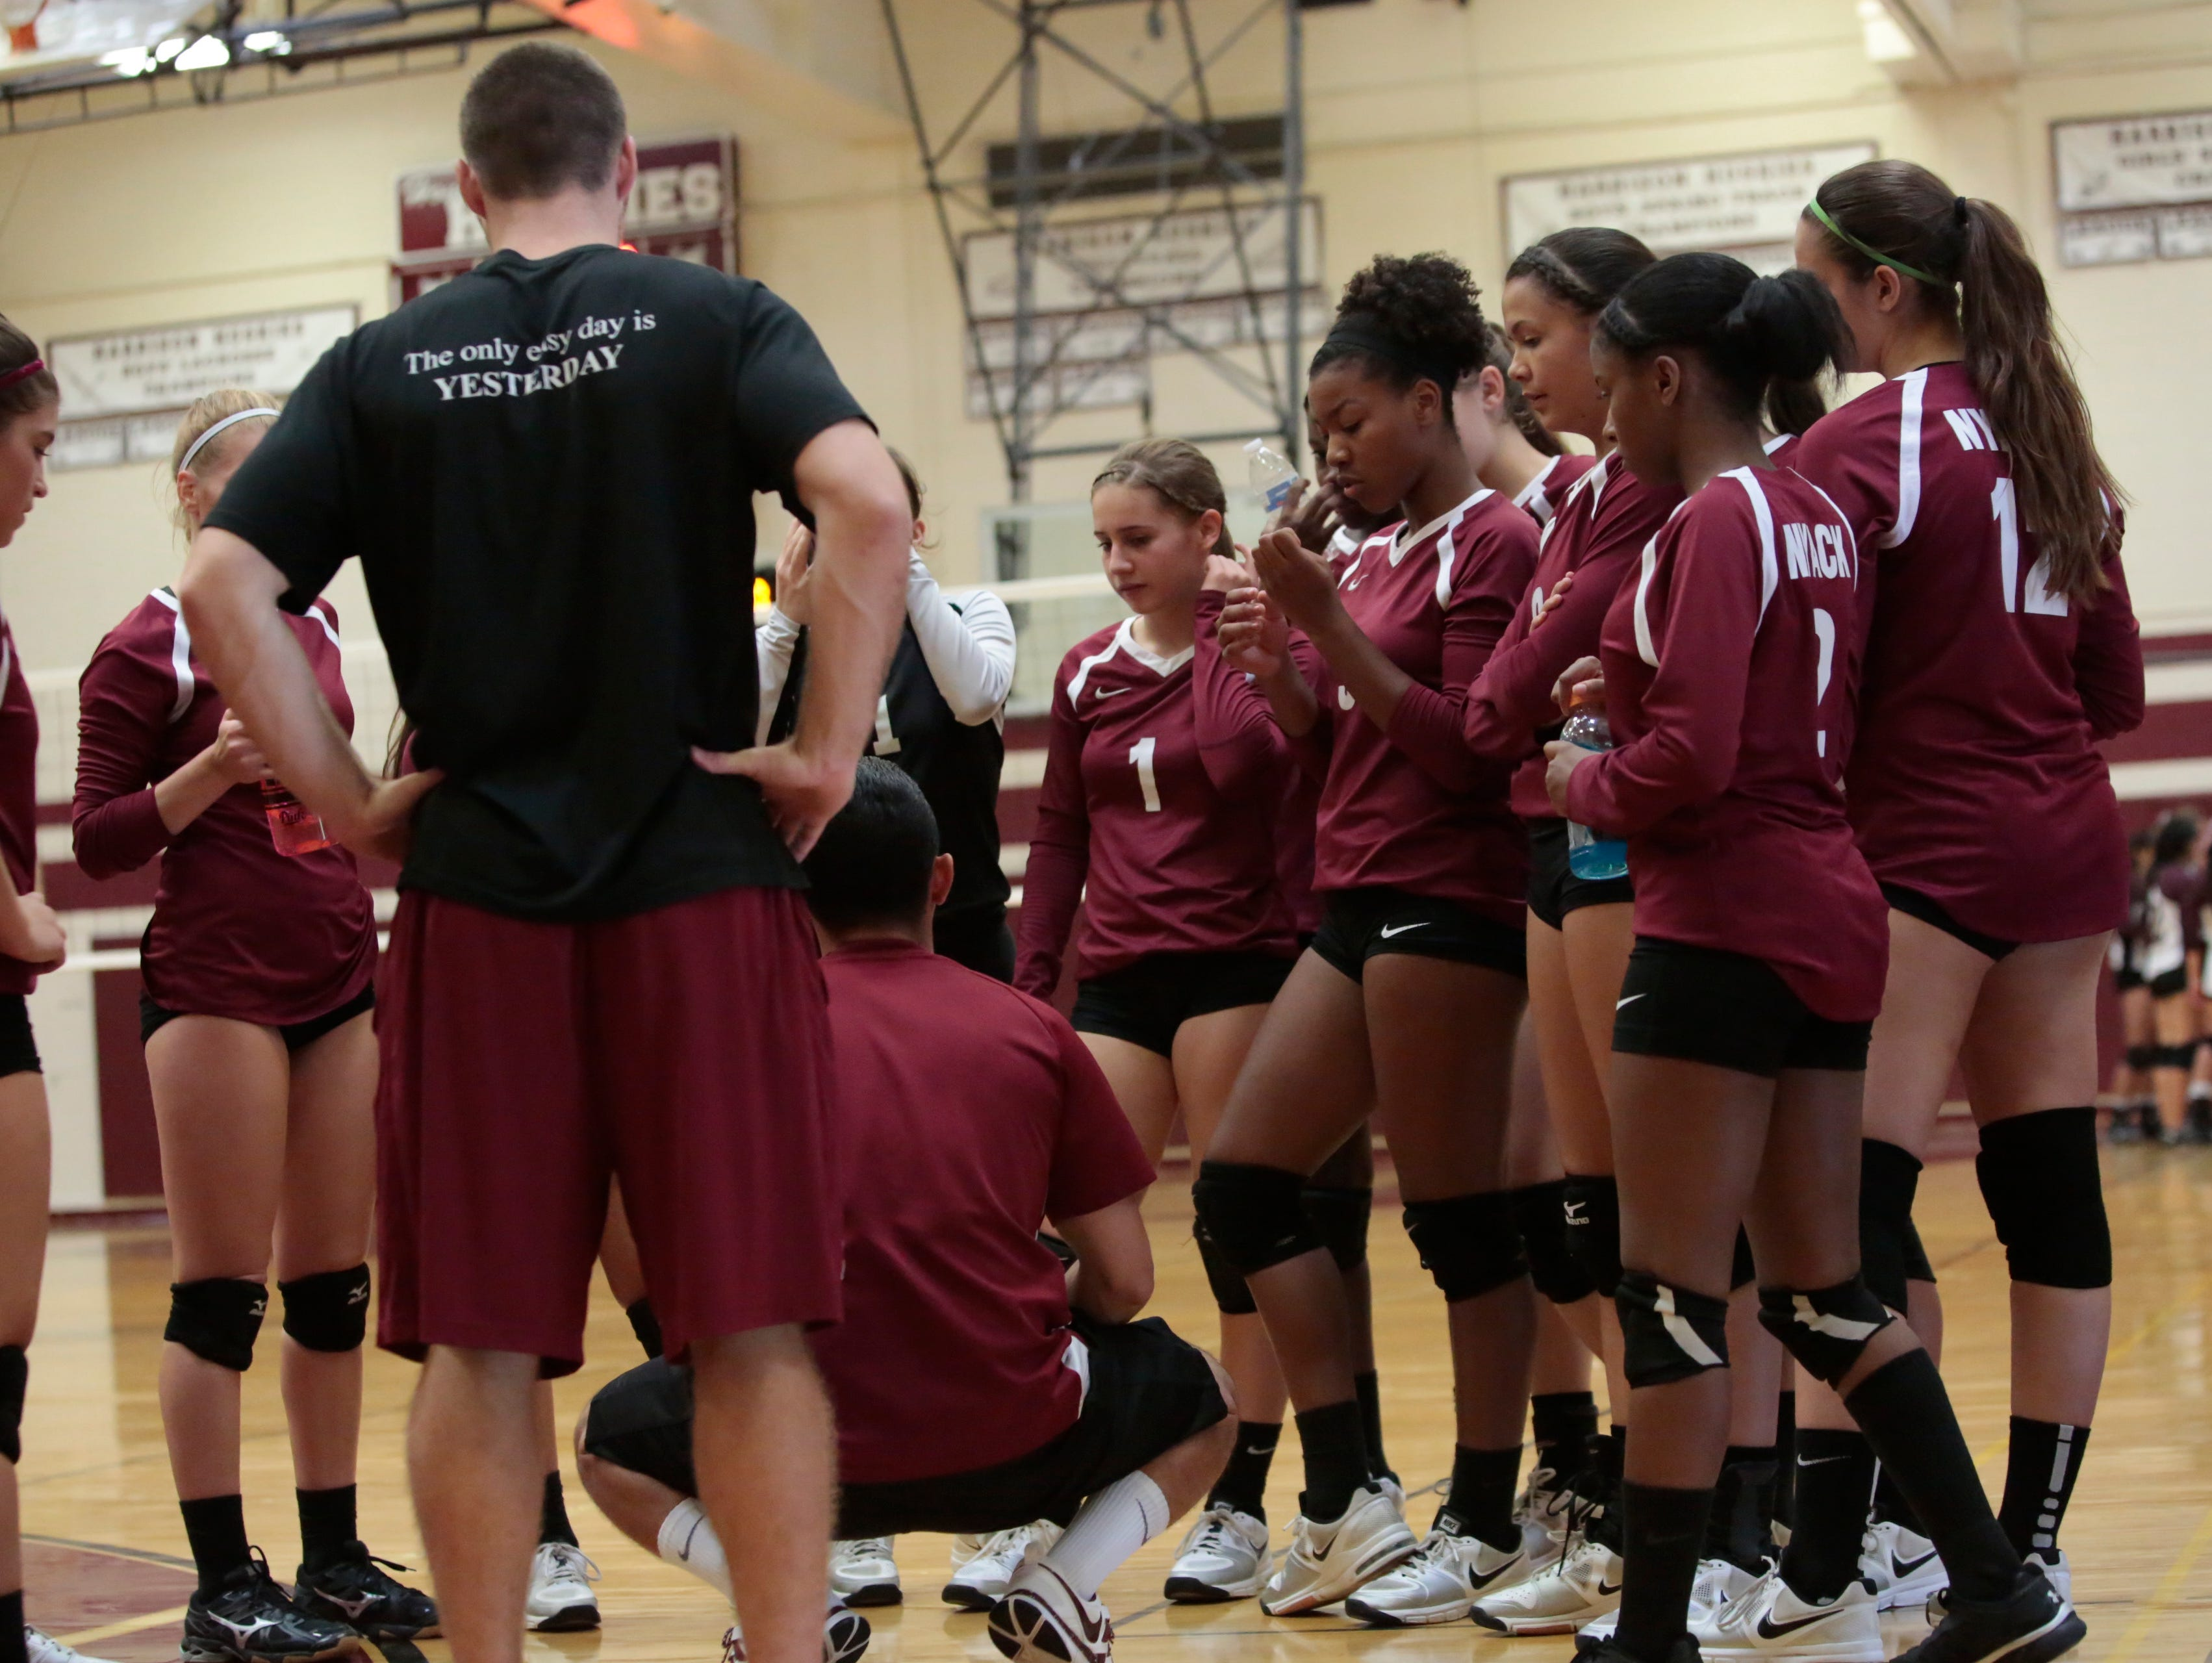 Game action between Harrison and Nyack volleyball at Harrison High School on Sept. 28, 2015.